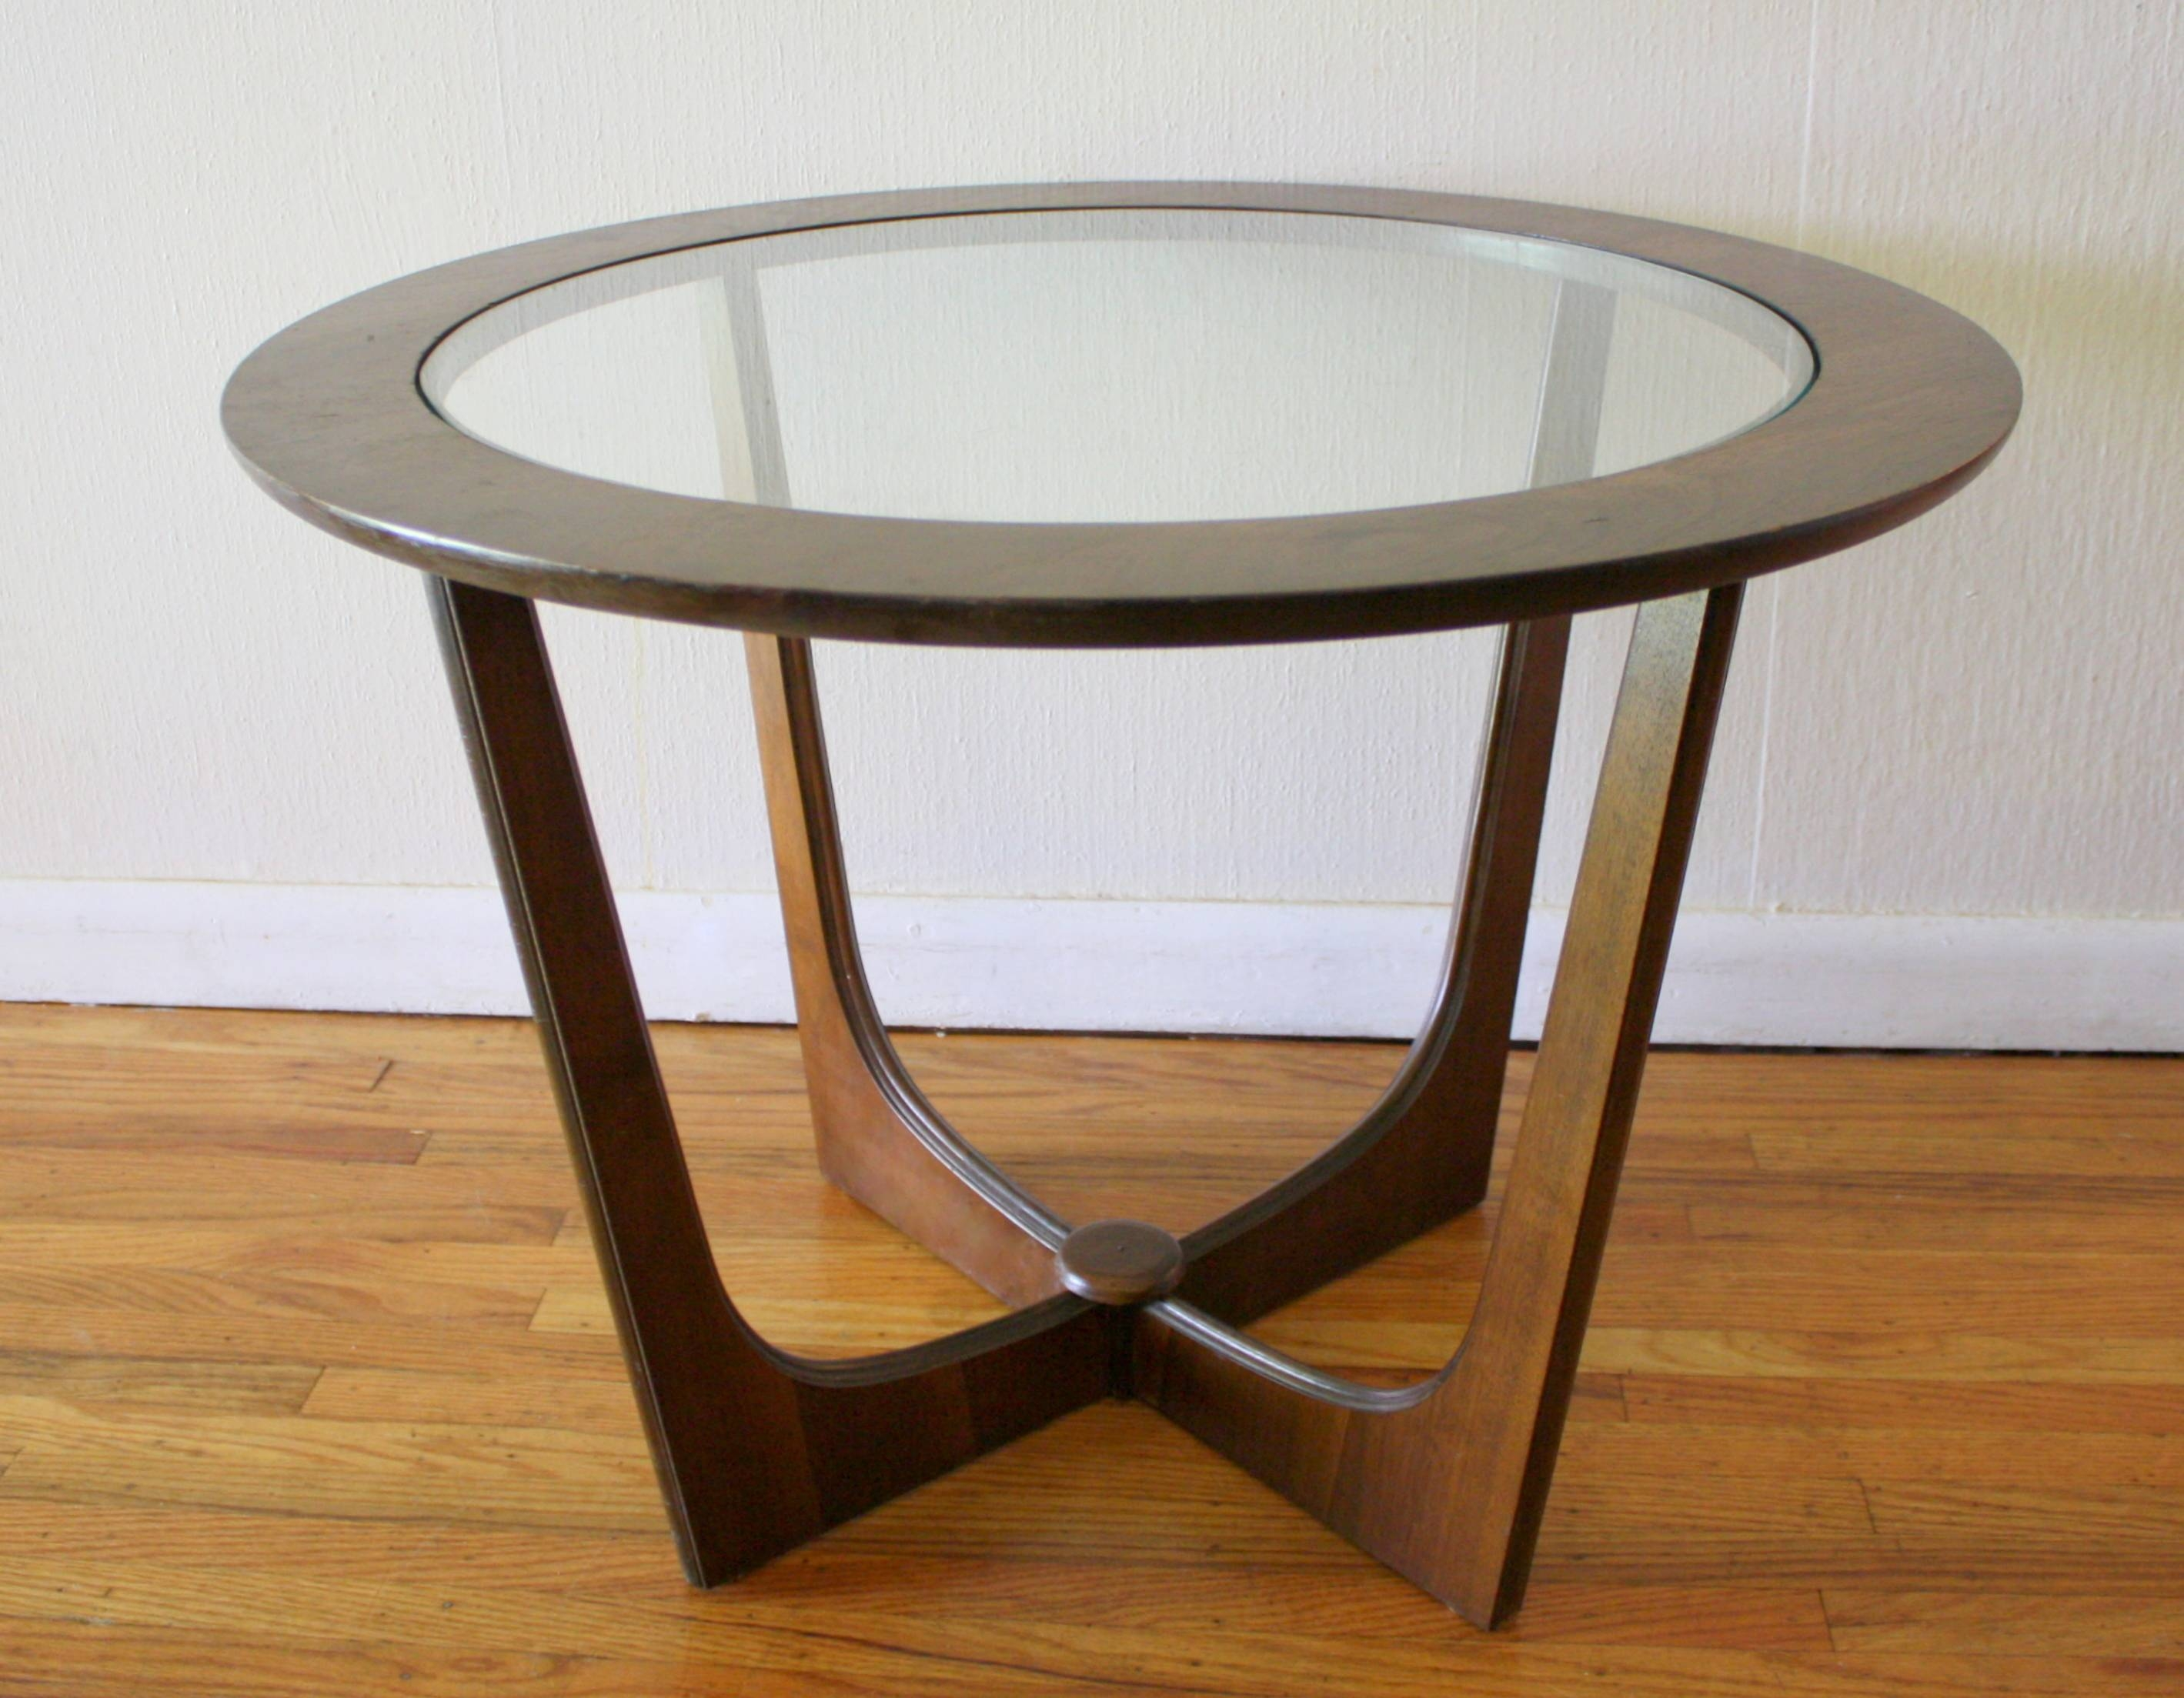 Round Coffee Table: Top Unique Round Wood And Glass Coffee Table Within Round Wood And Glass Coffee Tables (View 4 of 15)